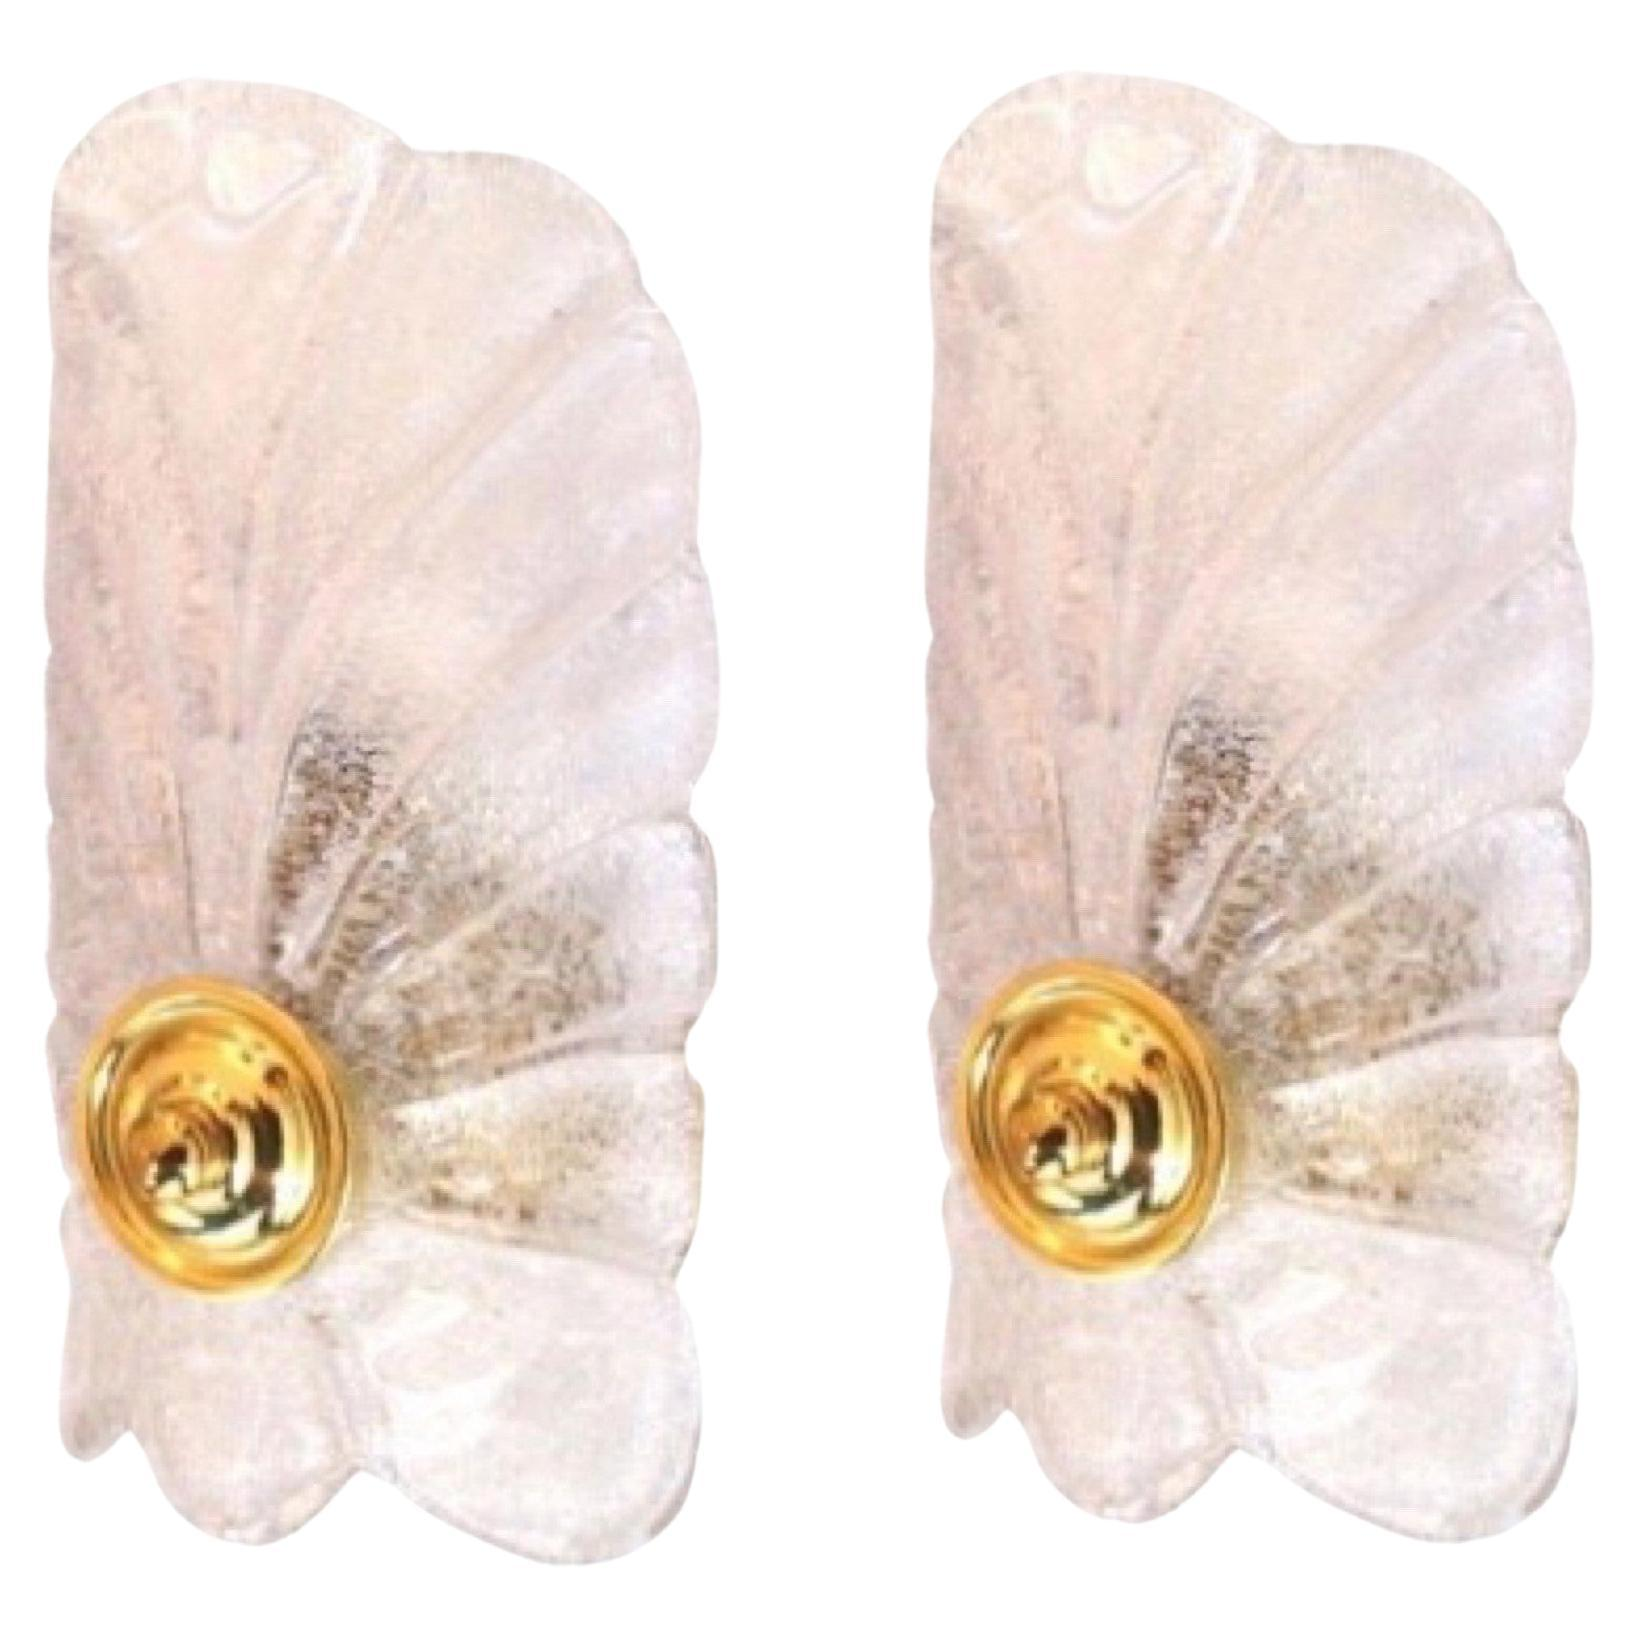 Pair of Italian Midcentury Clear Murano Glass Wall Sconces, 1960s